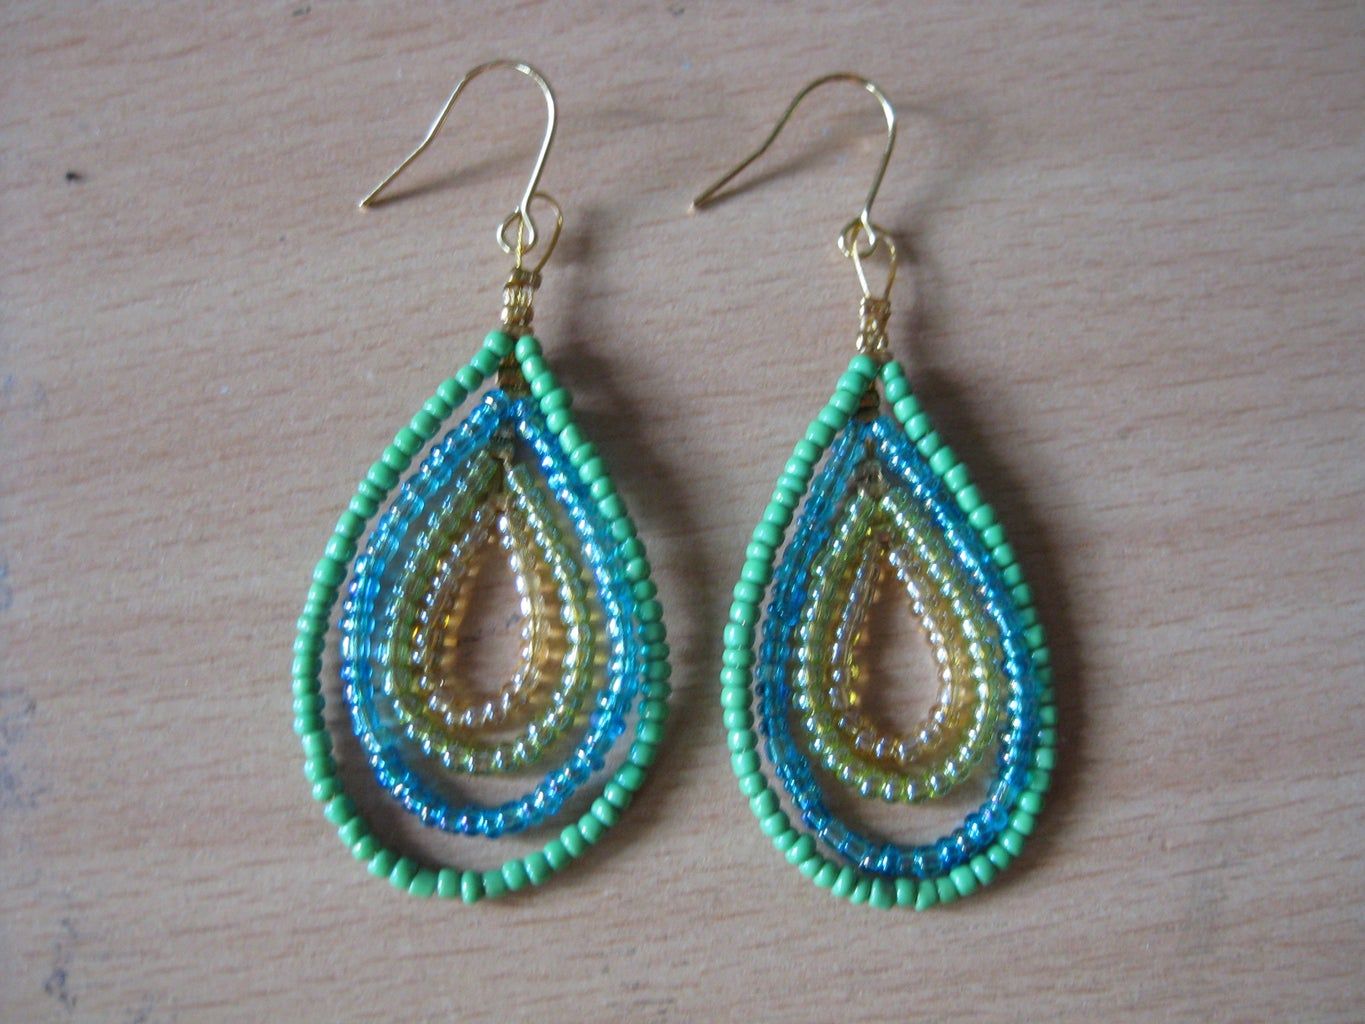 Donna's Earrings (inspired by Earrings Worn by Donna in Mamma Mia the Movie)